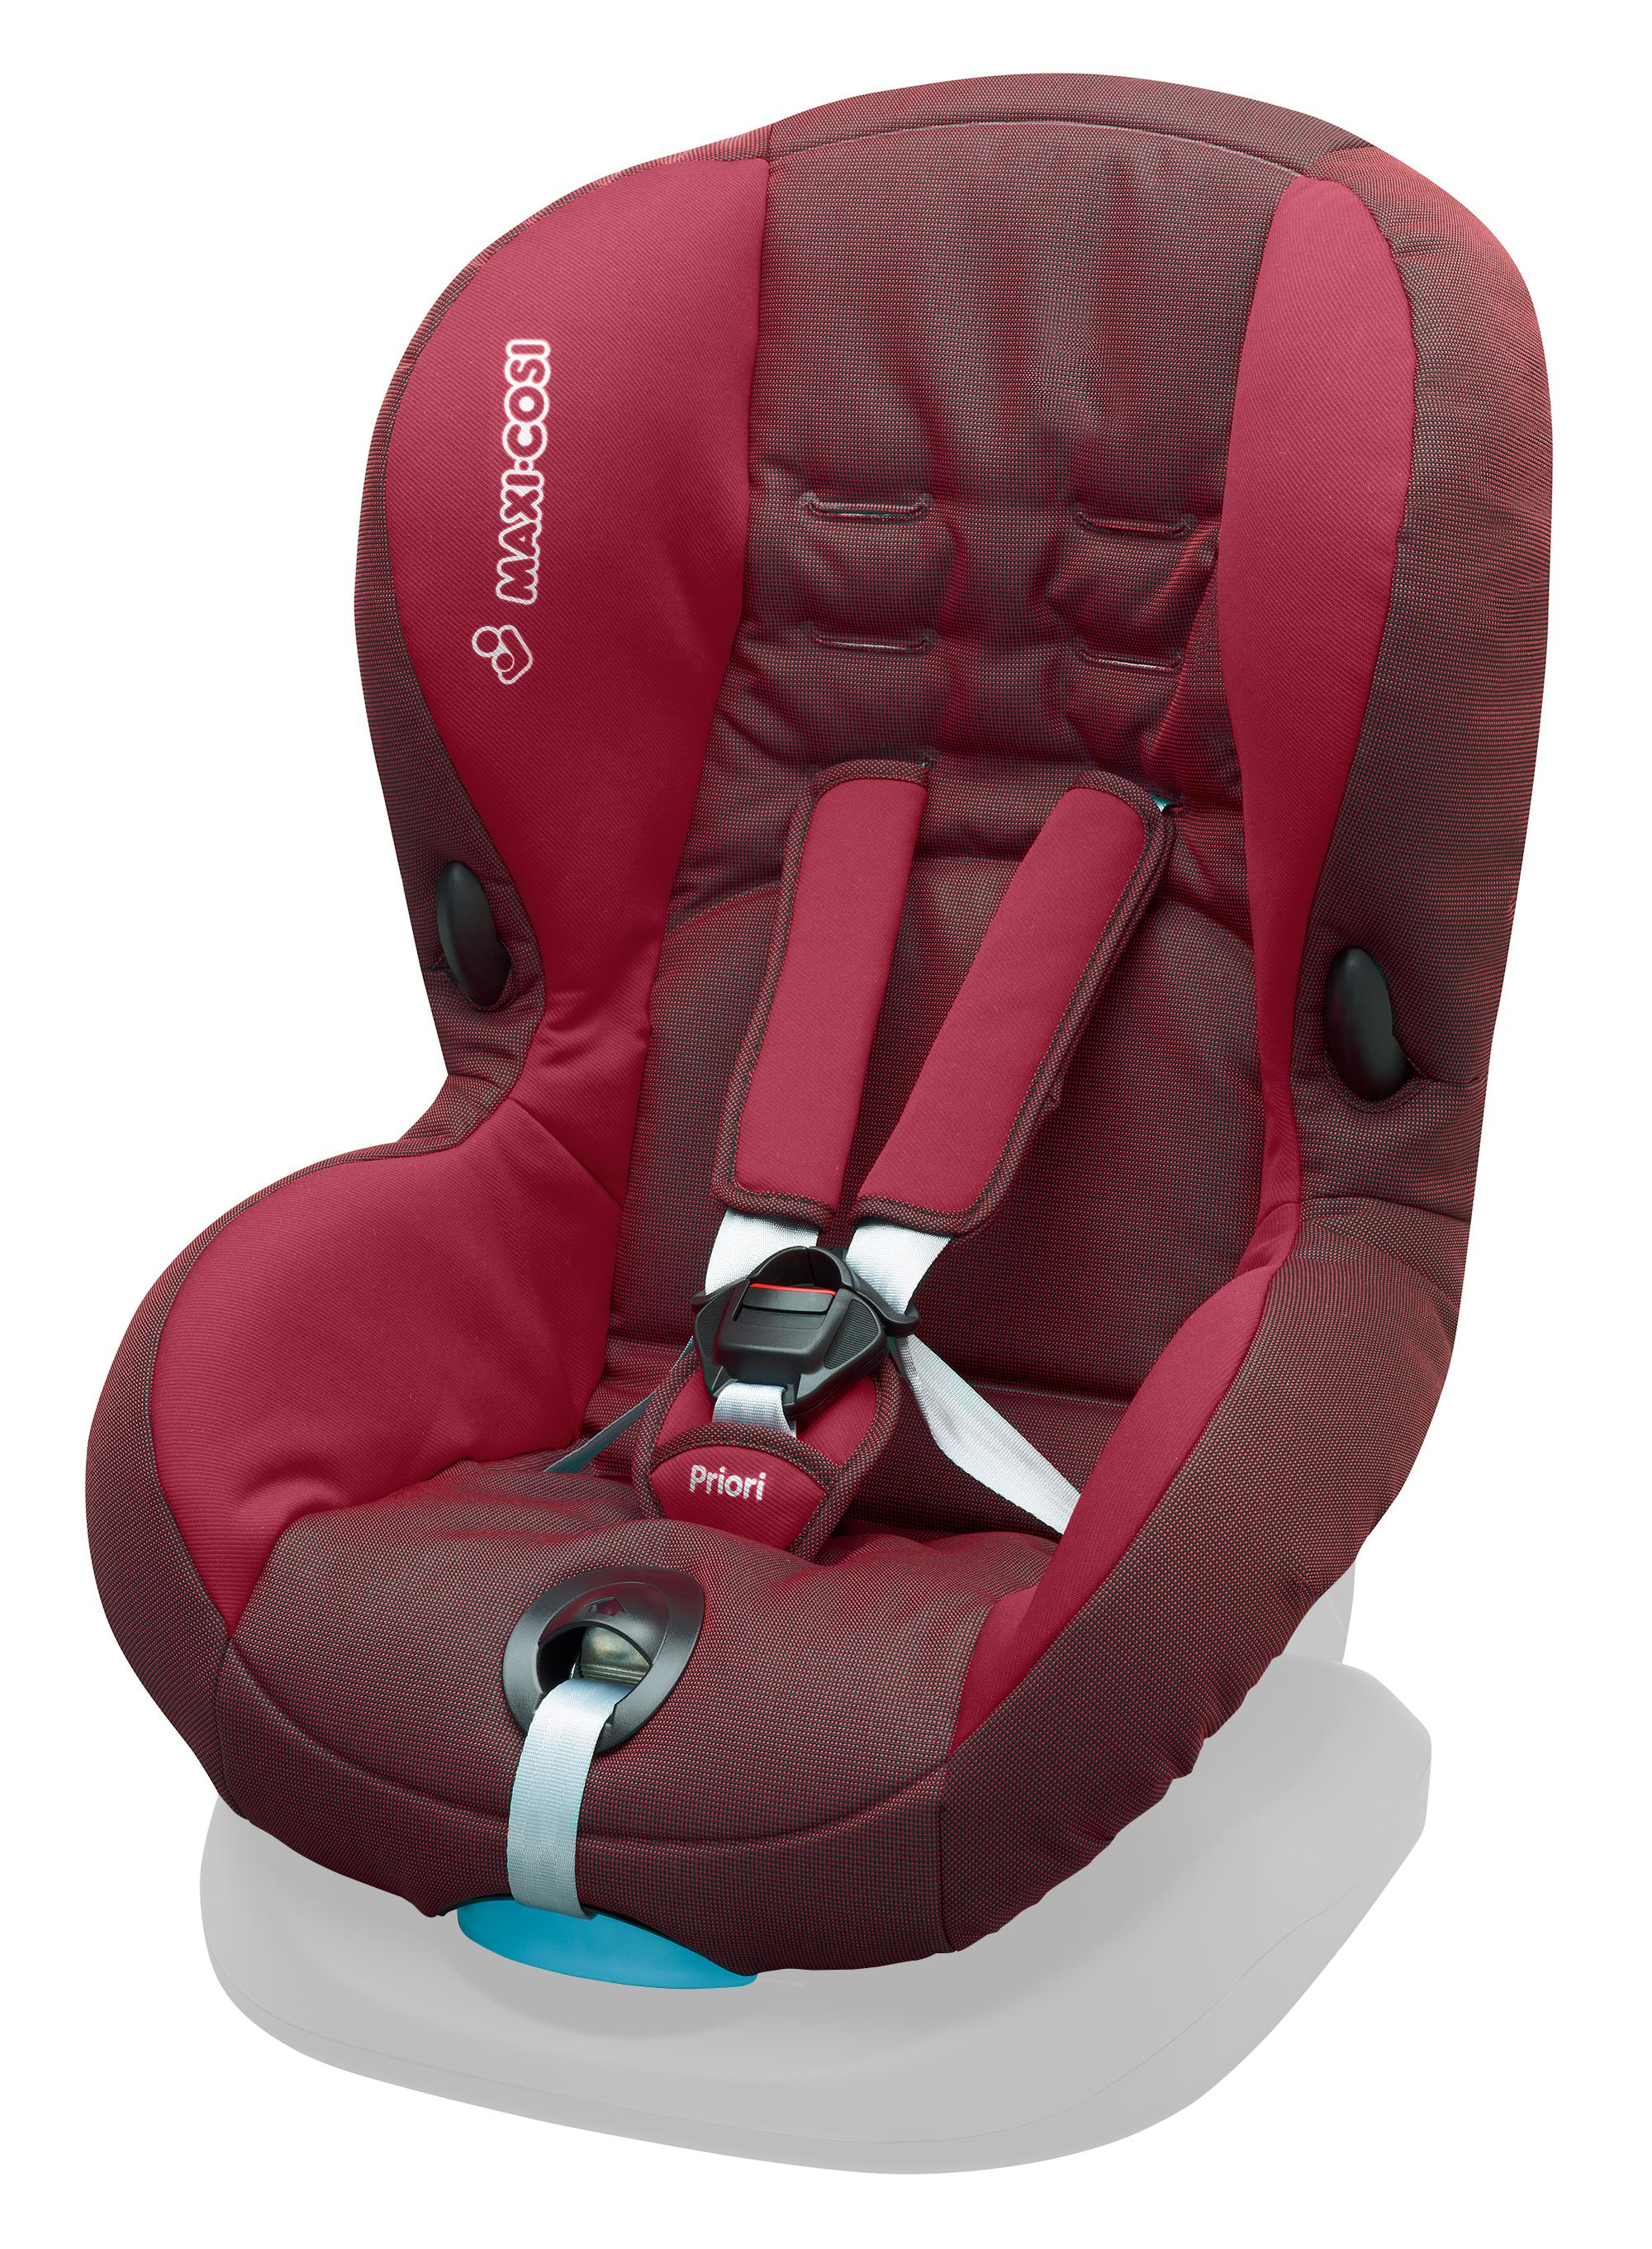 maxi cosi priori sps sps car seat replacement cover. Black Bedroom Furniture Sets. Home Design Ideas